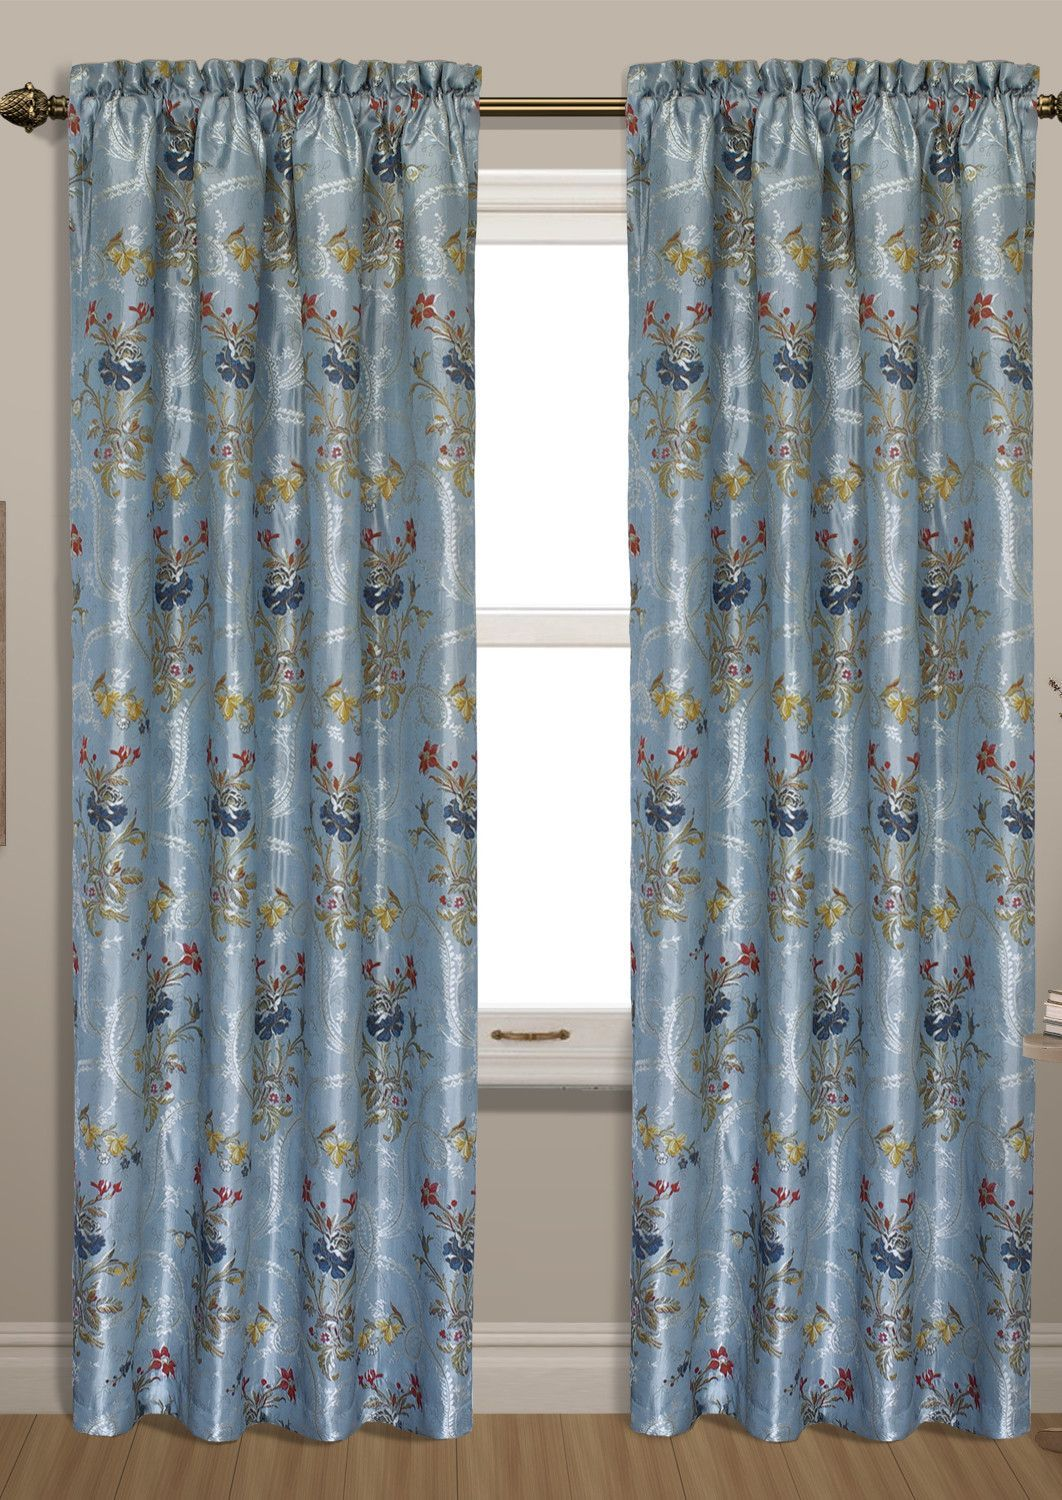 20 Anno Luv Panel Curtain Ikea With Images: Jewel Curtain Panel